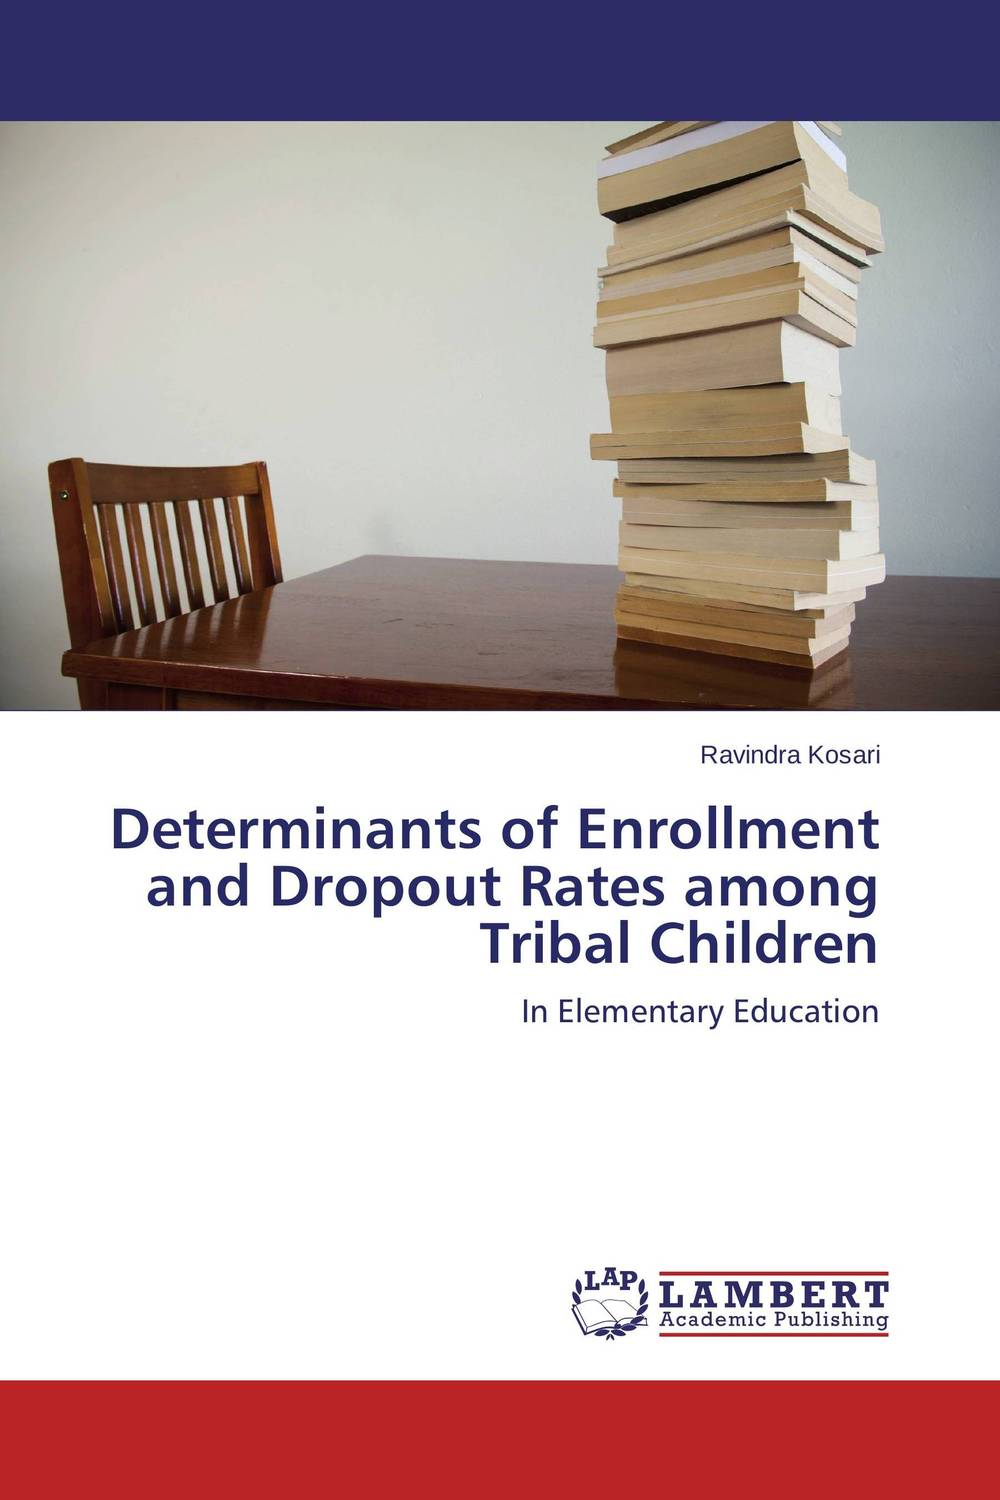 Determinants of Enrollment and Dropout Rates among Tribal Children